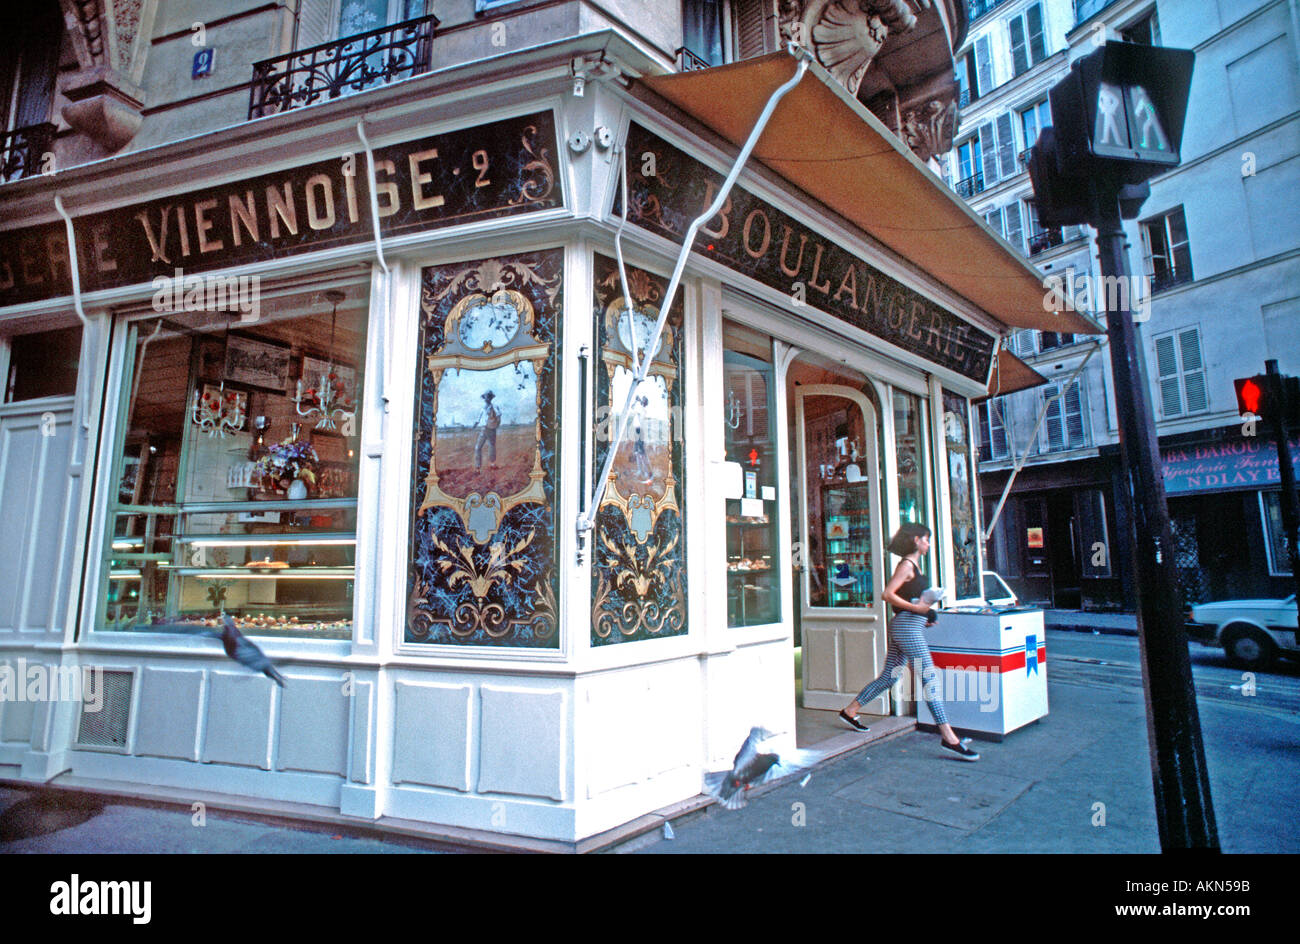 Exterieur Vintage 39old French Bakery Shop 39 39paris France 39 Boulangerie